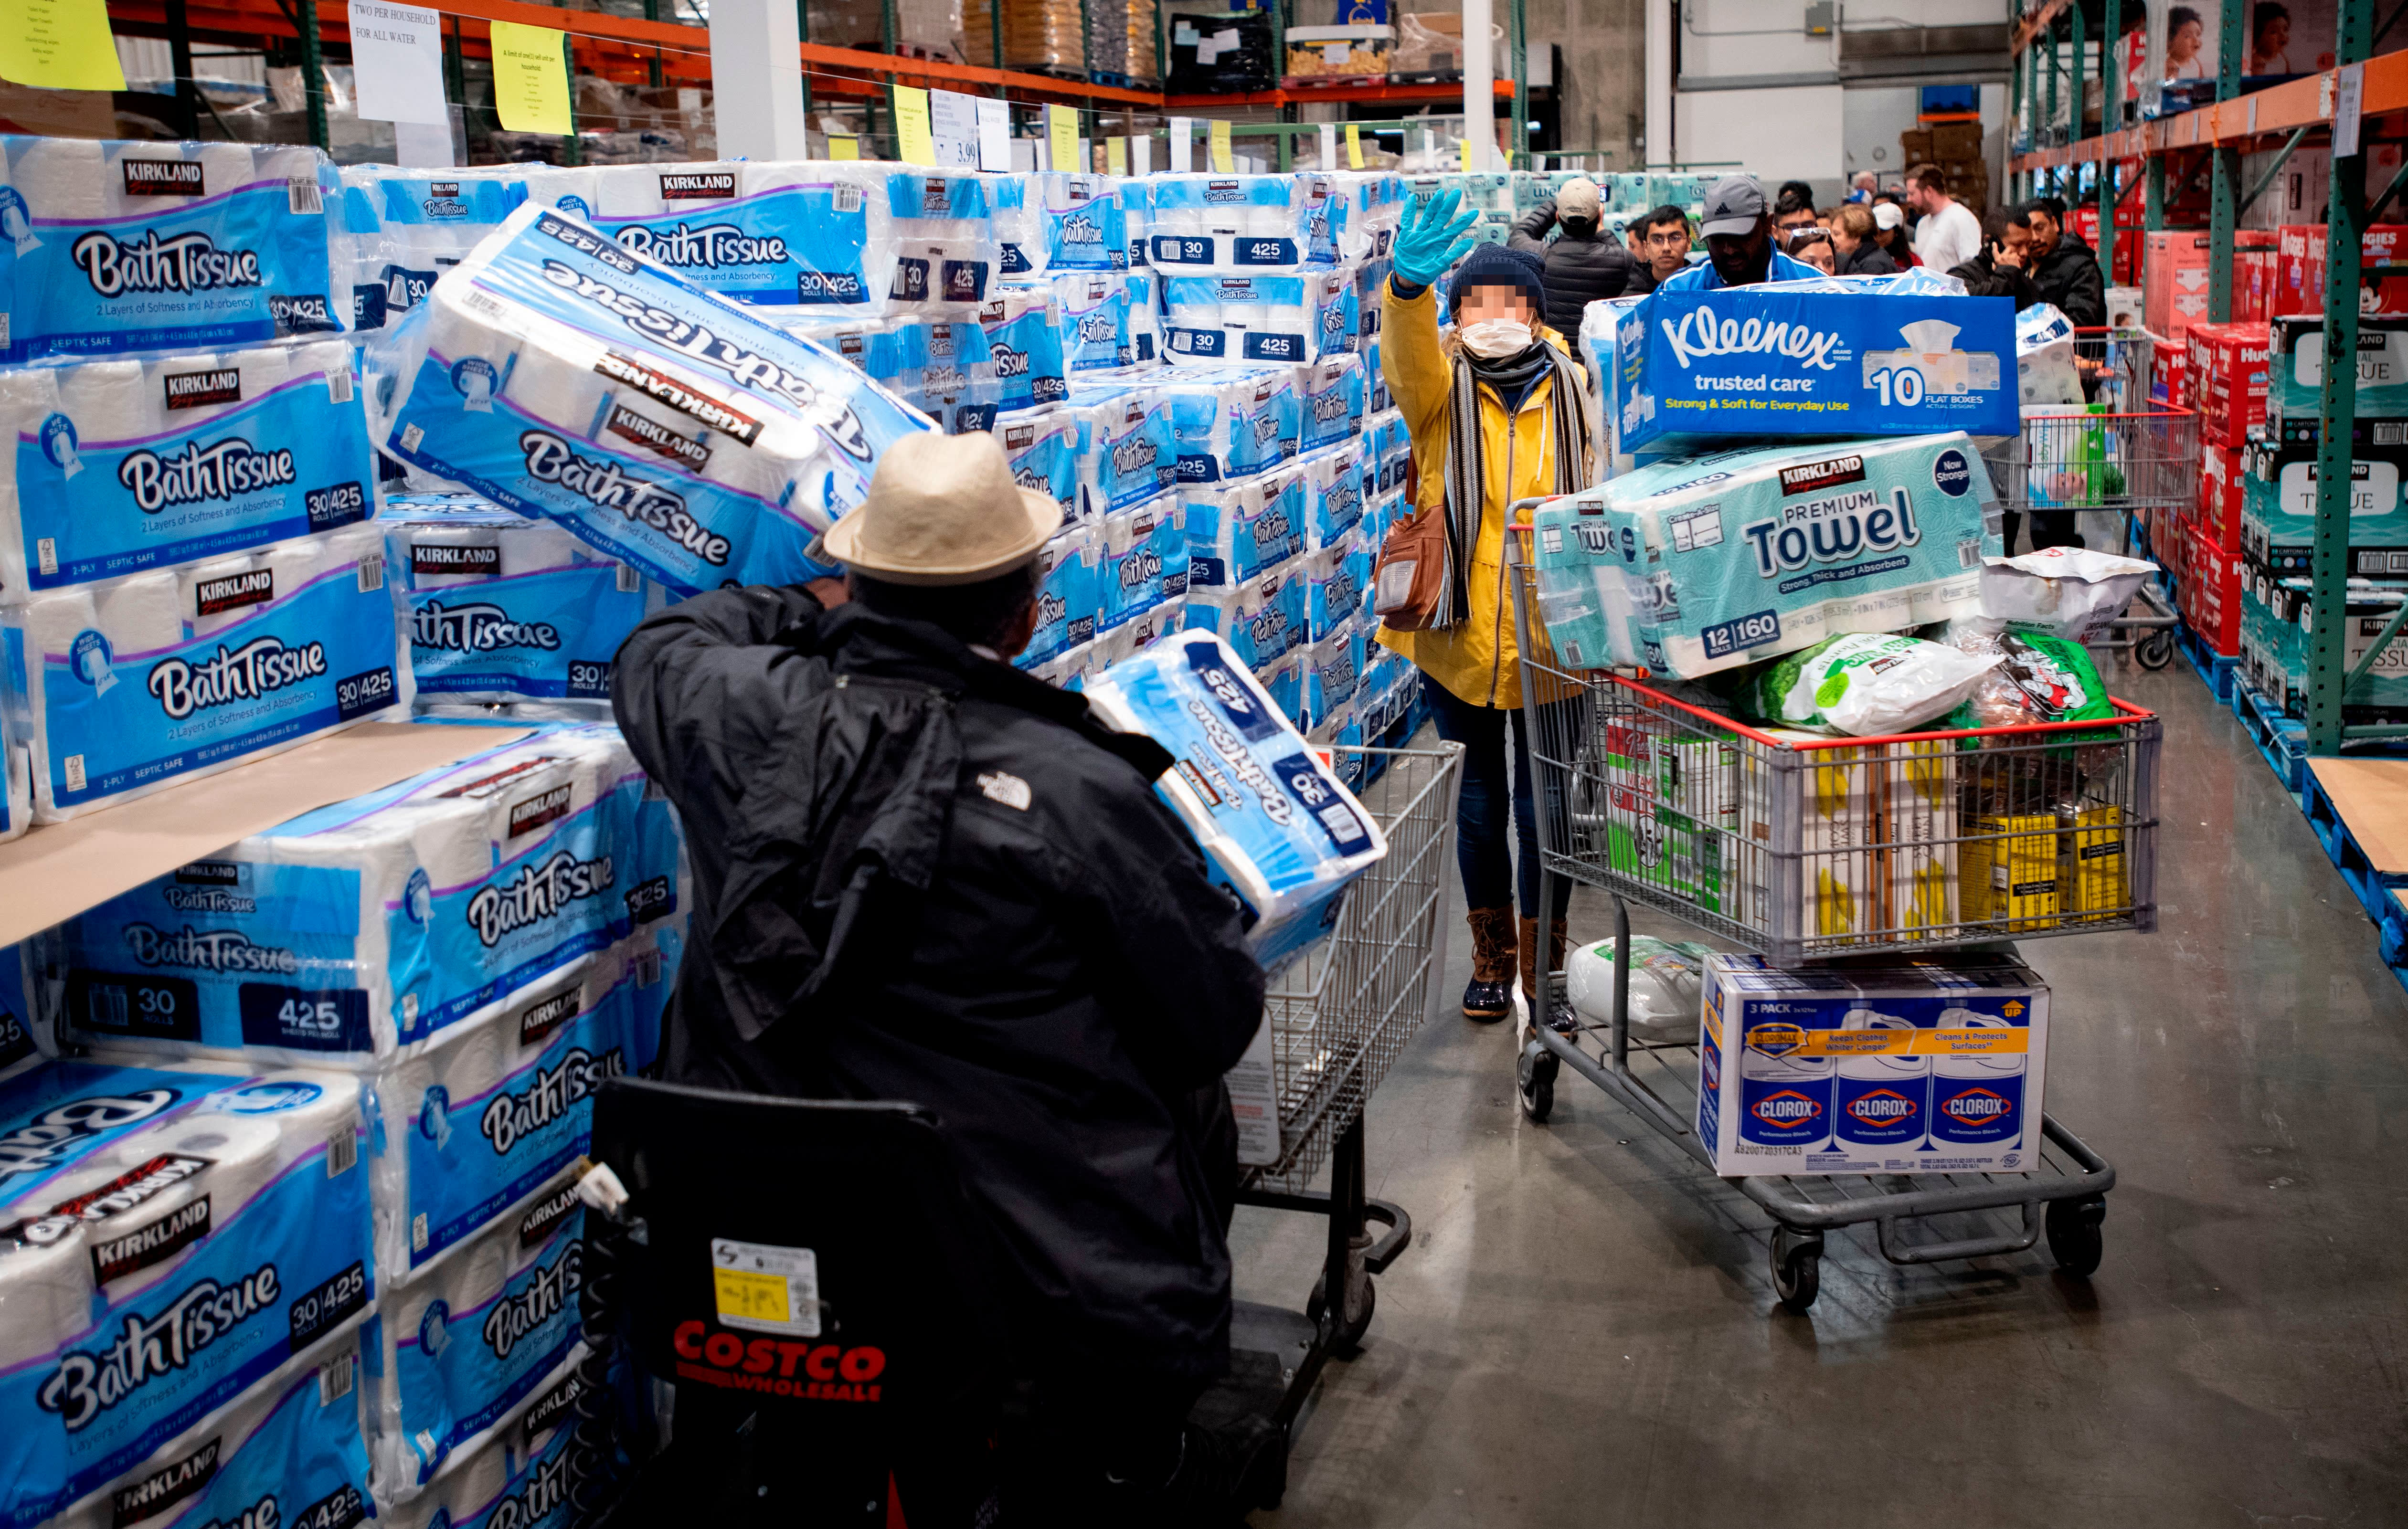 Salesforce and Costco are flashing buy signals to investors, Jim Cramer says